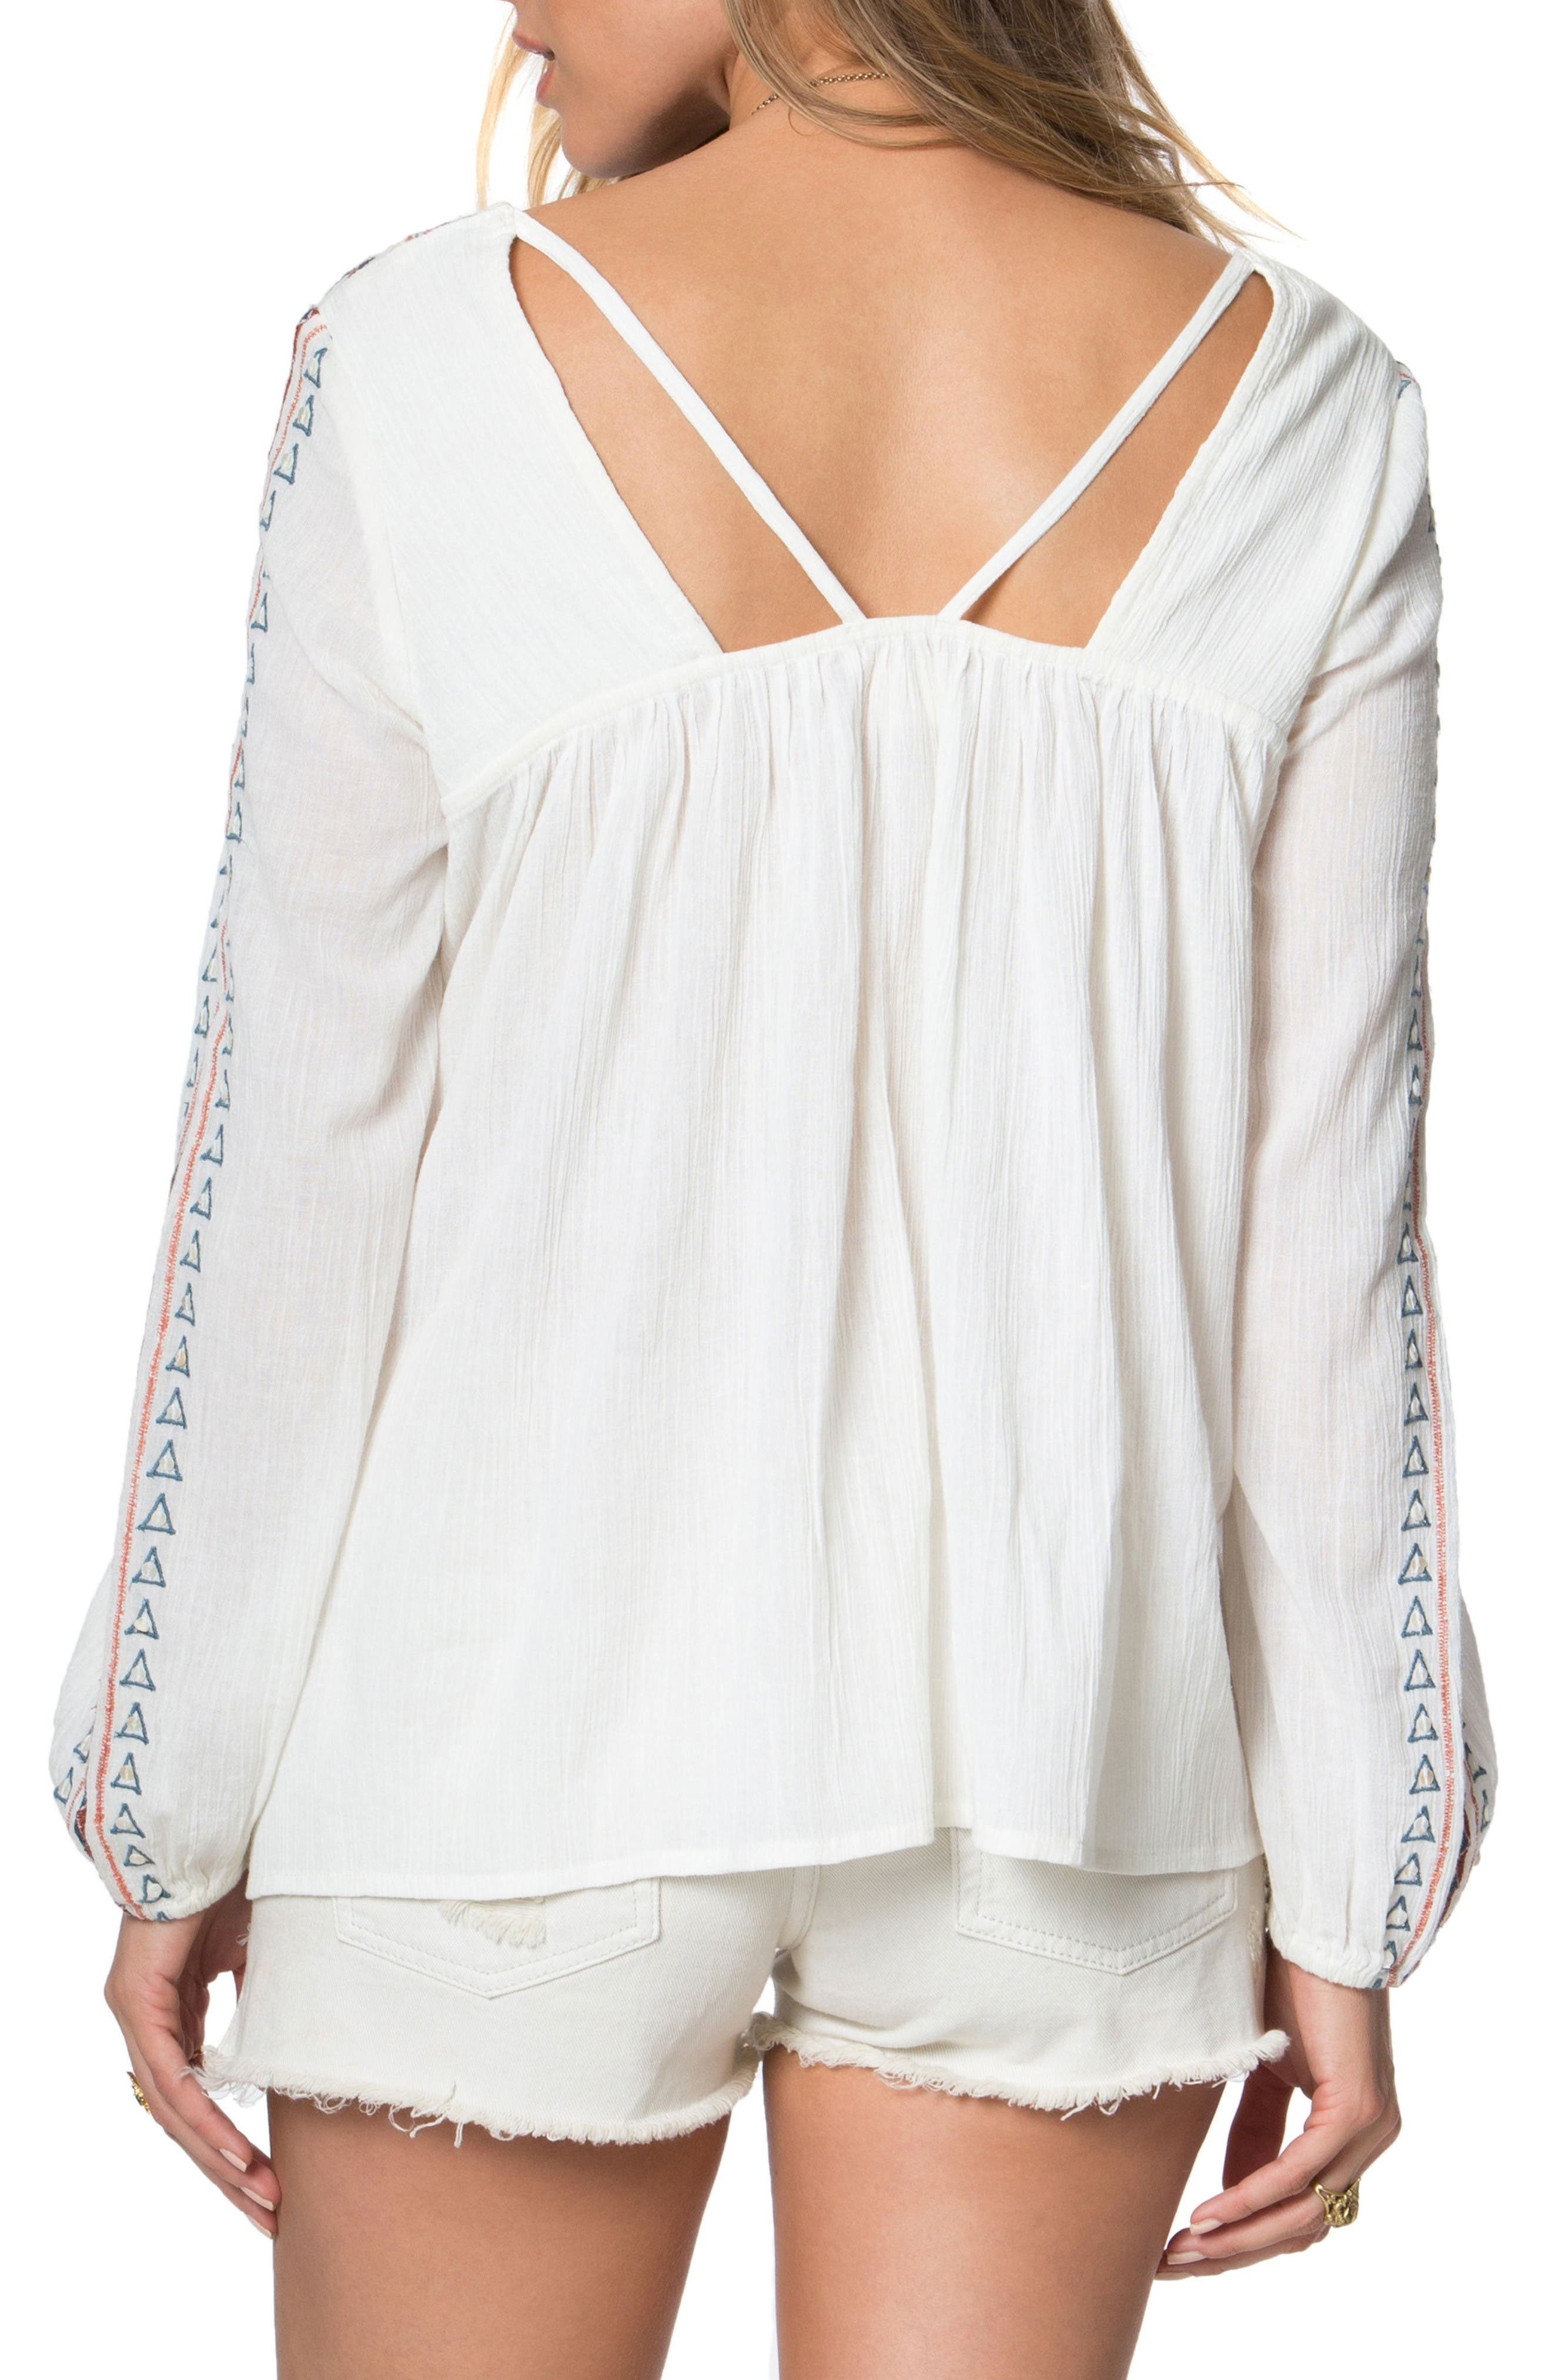 Alternate Image 2  - O'Neill Sidra Embroidered Woven Top